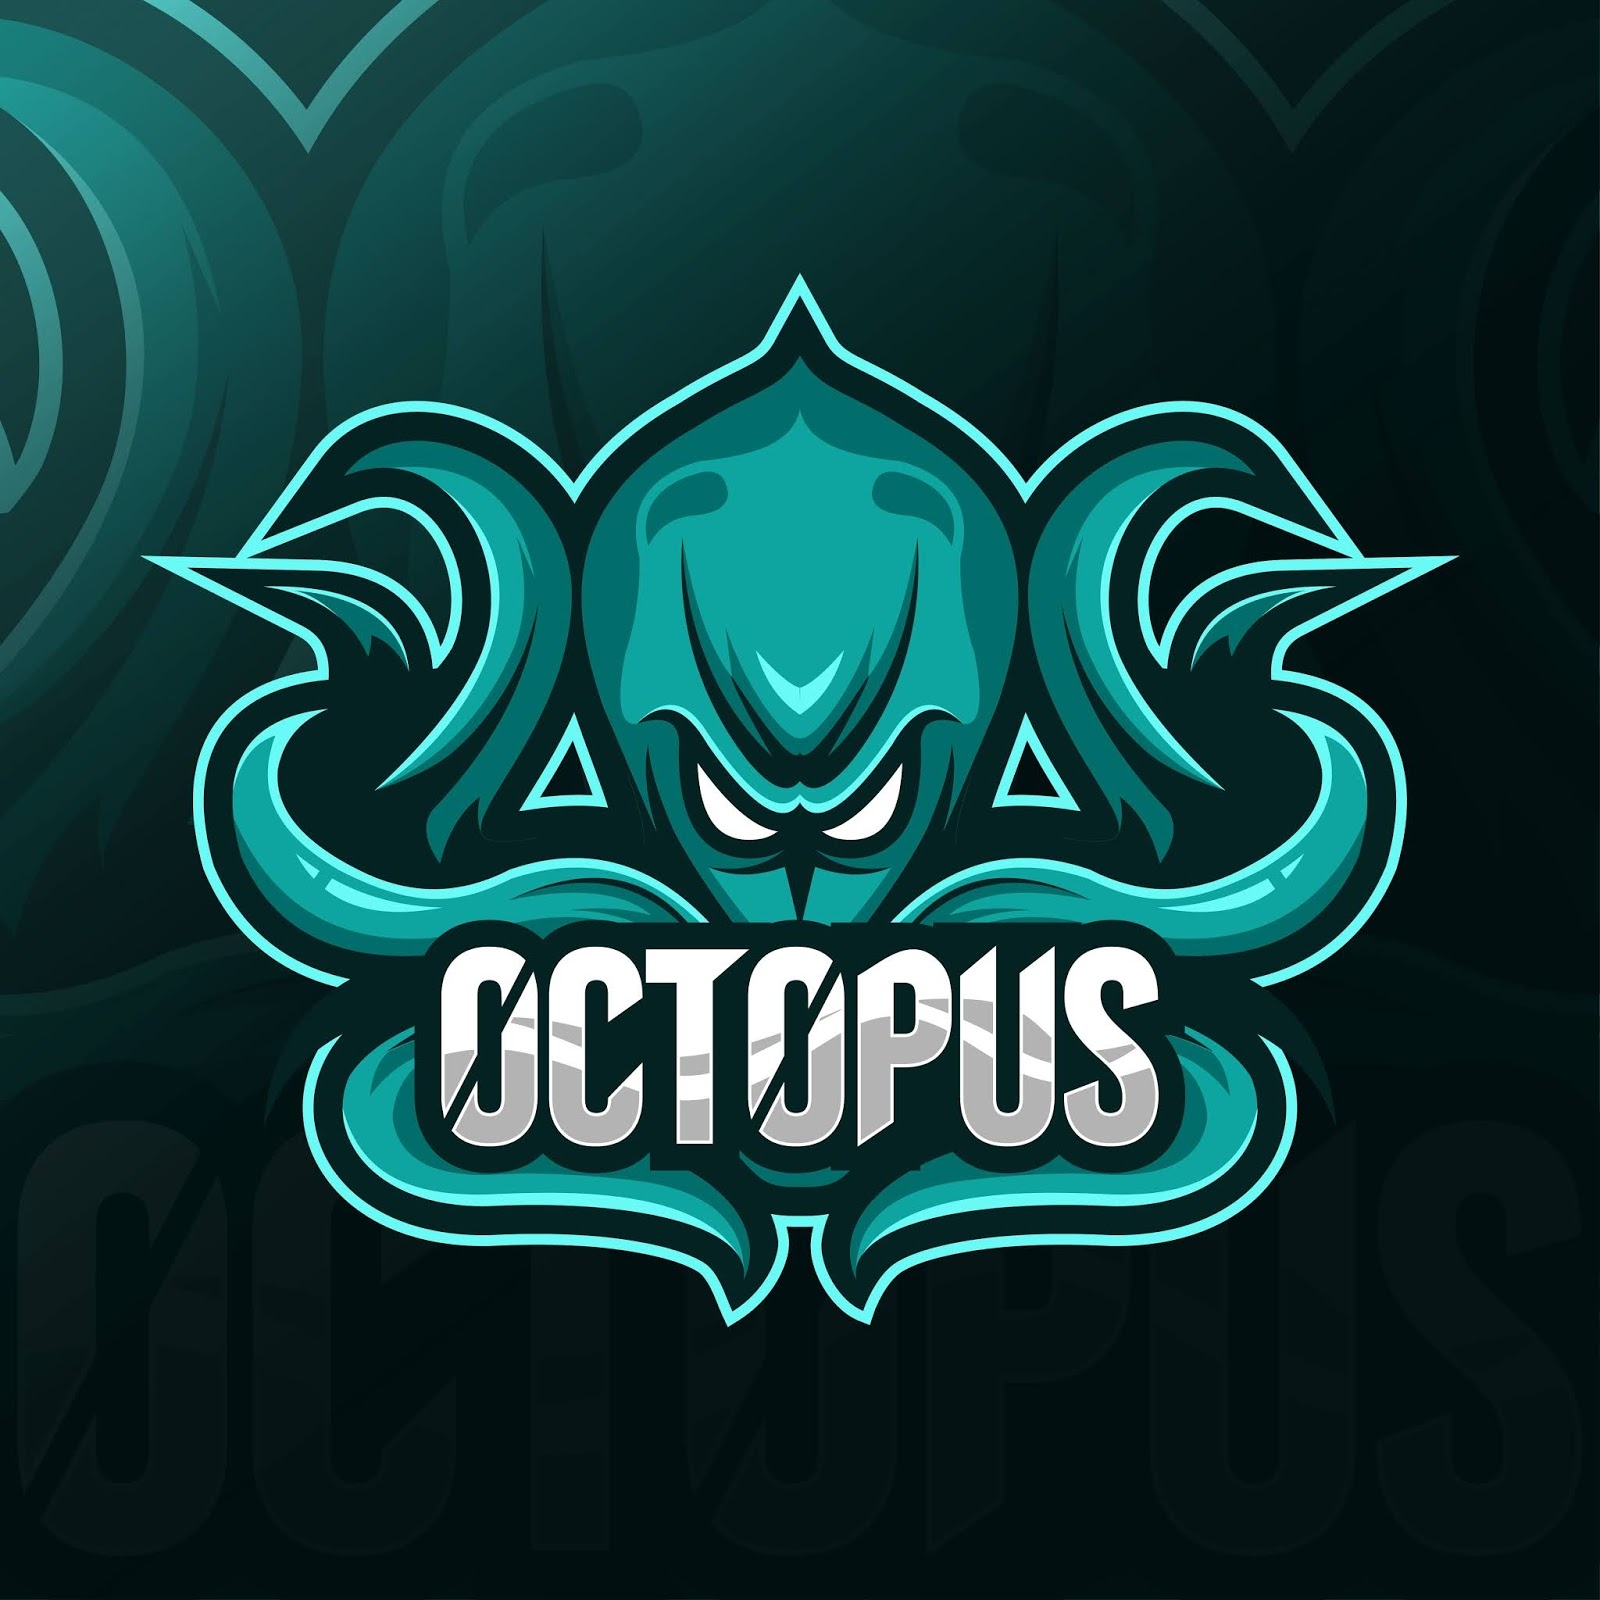 Octopus Mascot Logo Esport Templates Free Download Vector CDR, AI, EPS and PNG Formats